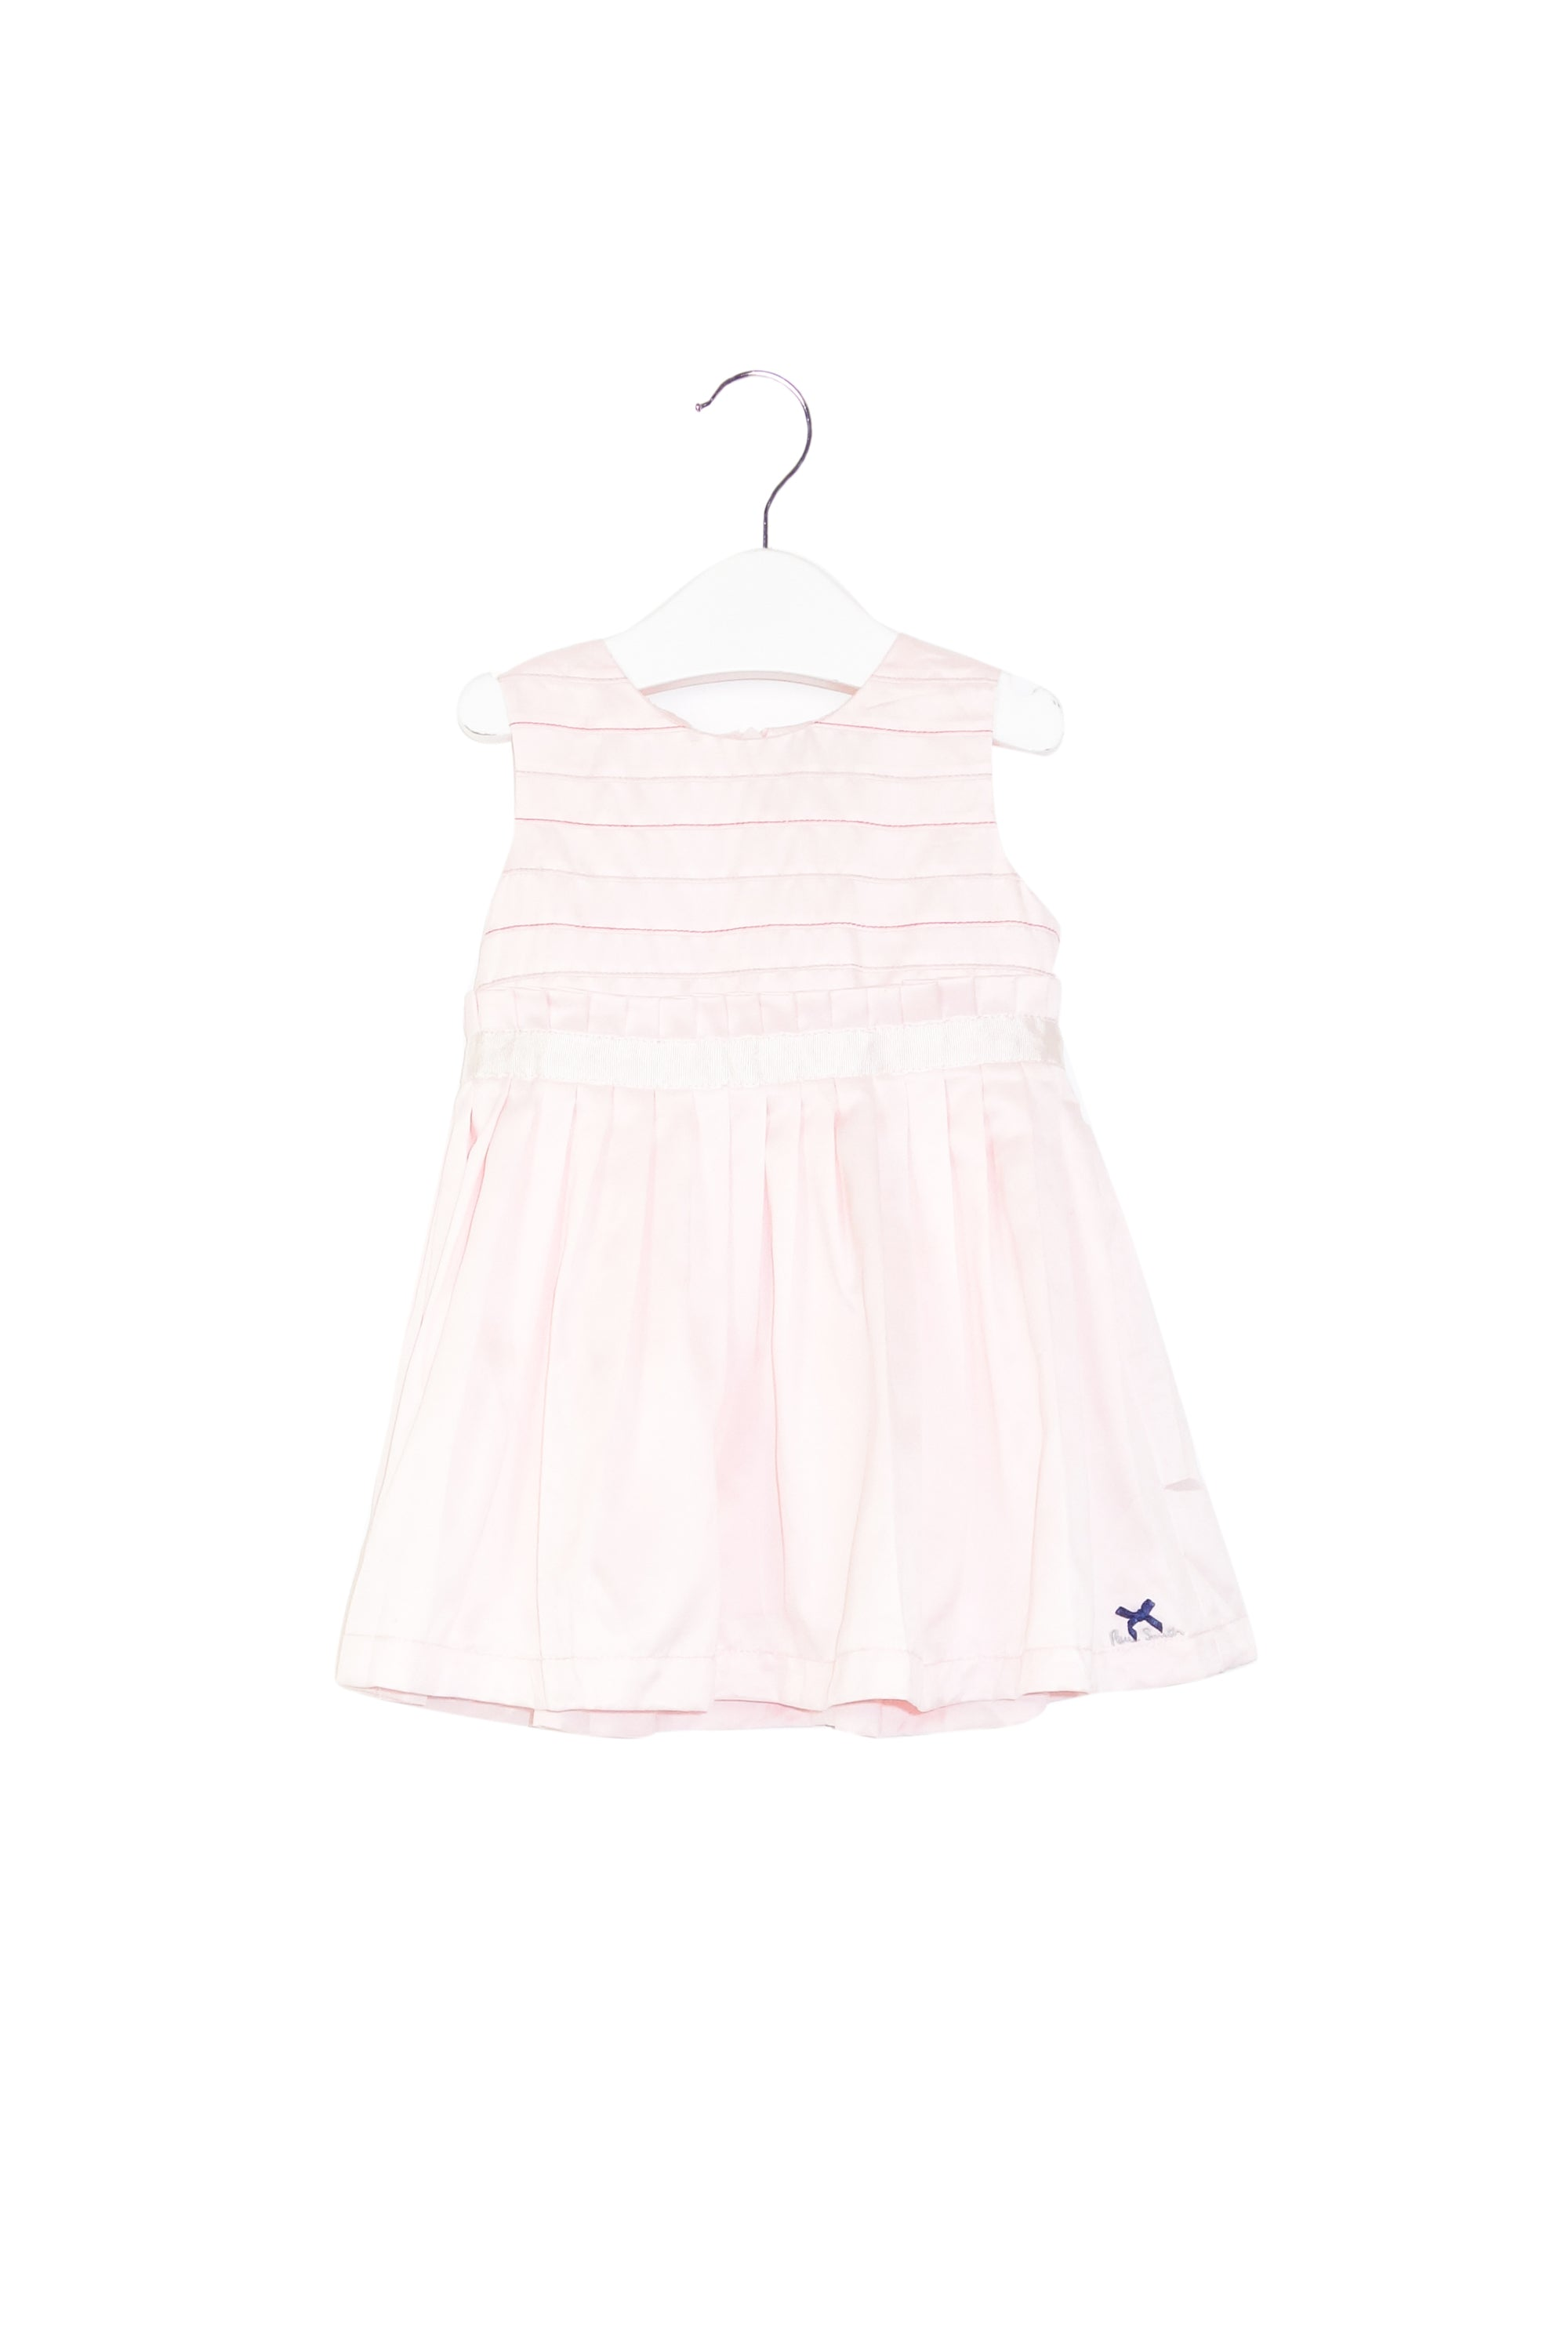 10013130 Paul Smith Baby ~ Dress 6M at Retykle